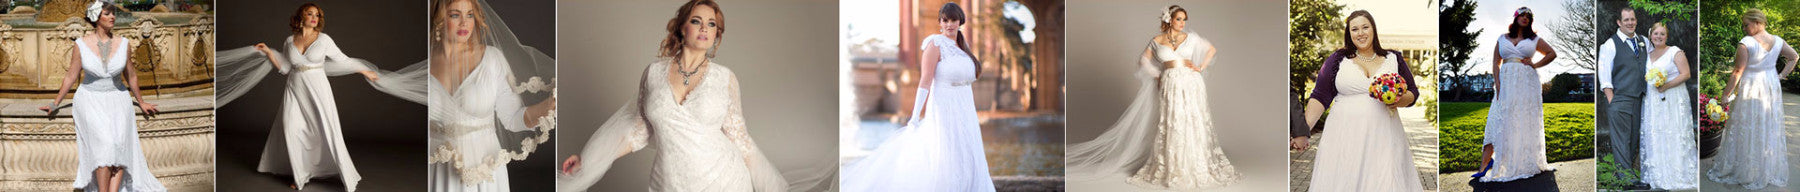 igigi plus size wedding dresses and gowns